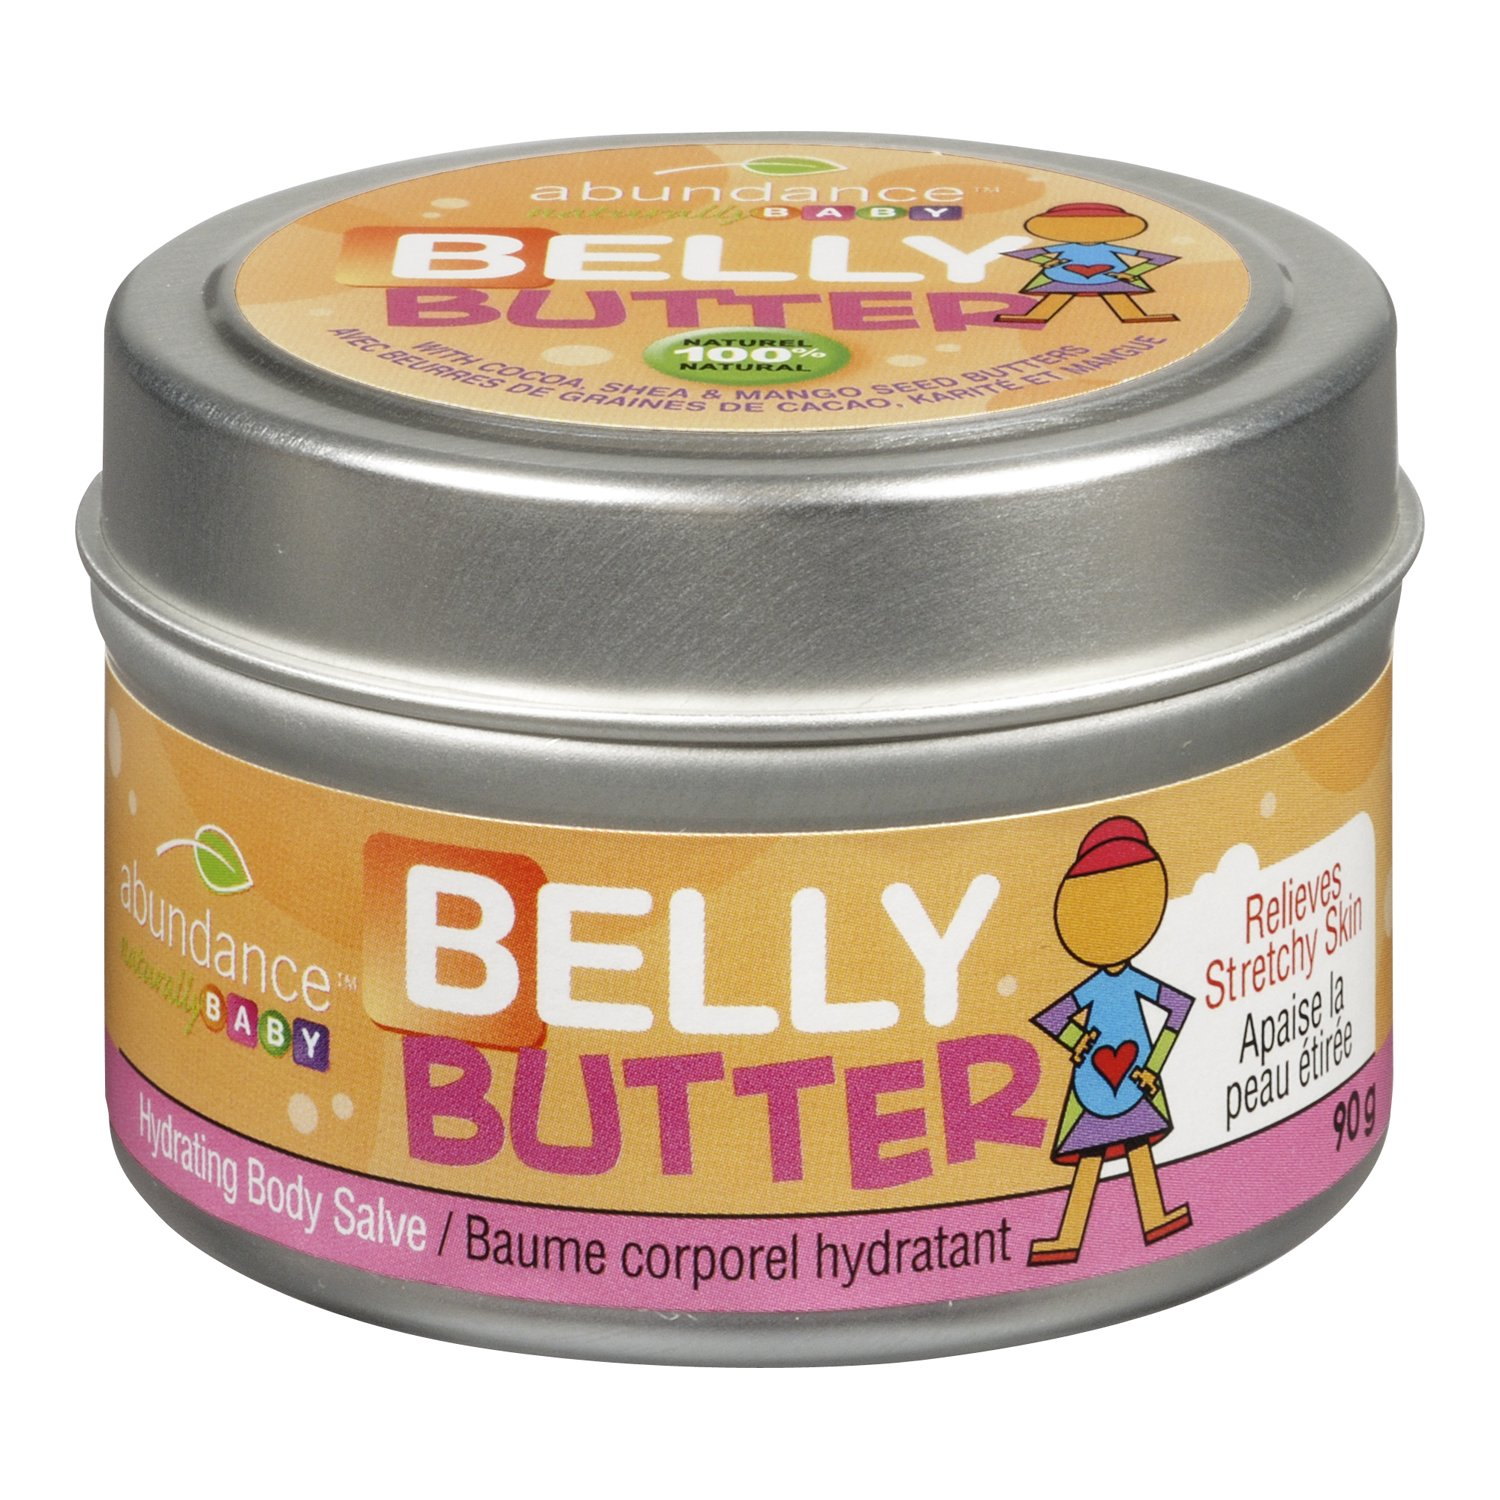 Abundance Naturally Baby Belly Butter 90g Abundance Naturally Ltd.